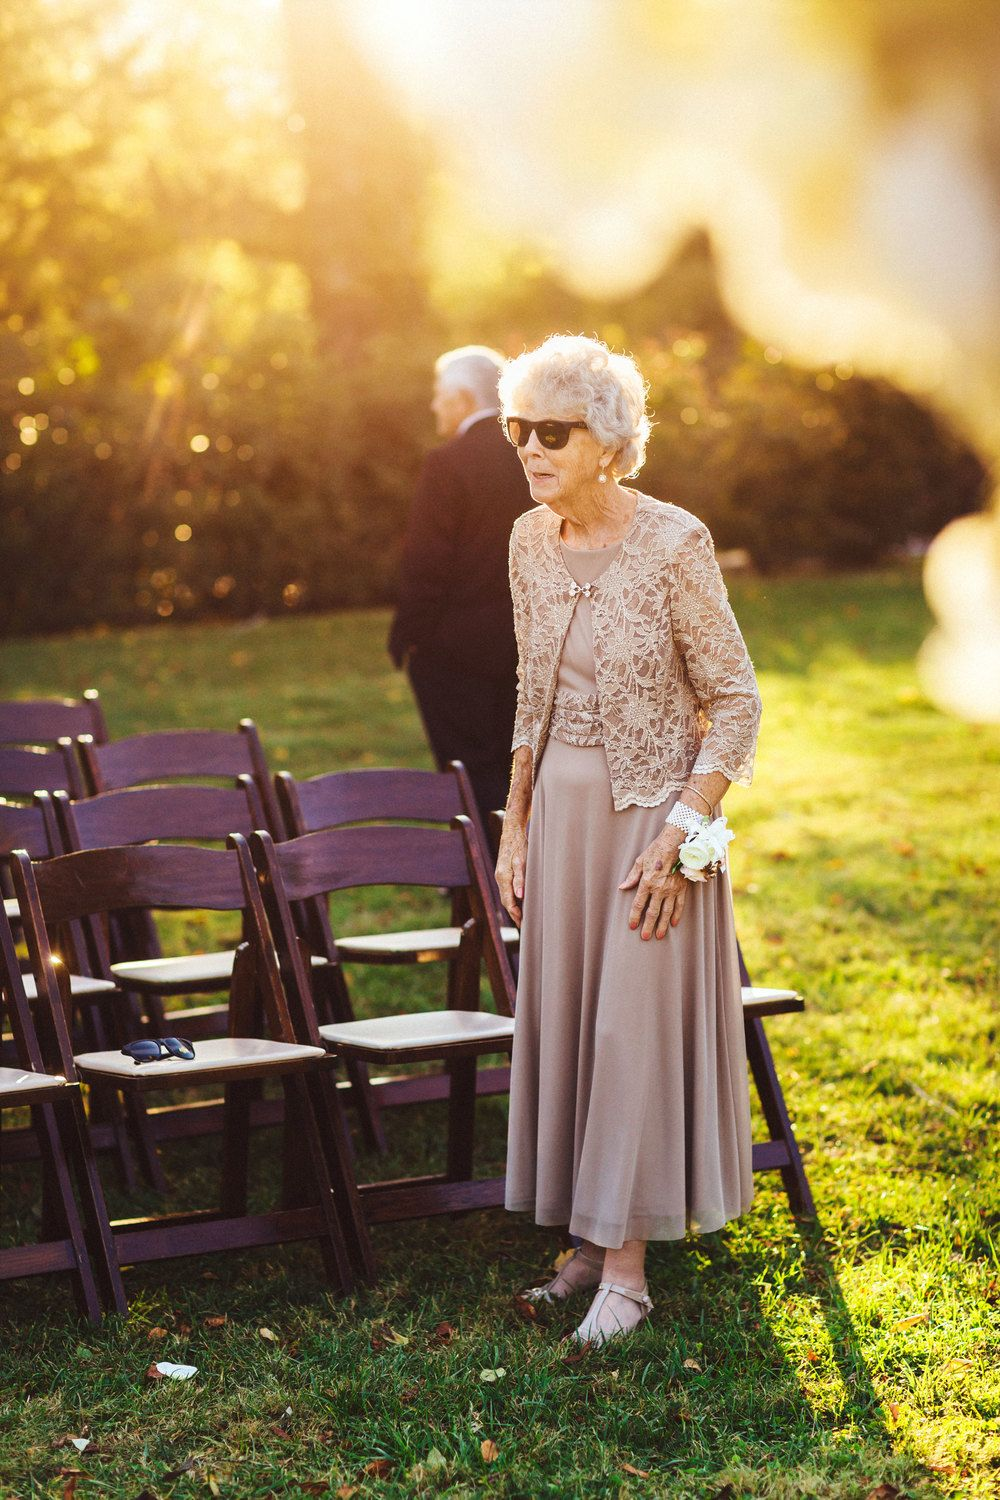 One year grandmothers bride dresses and weddings for Wedding dresses for grandmother of the bride